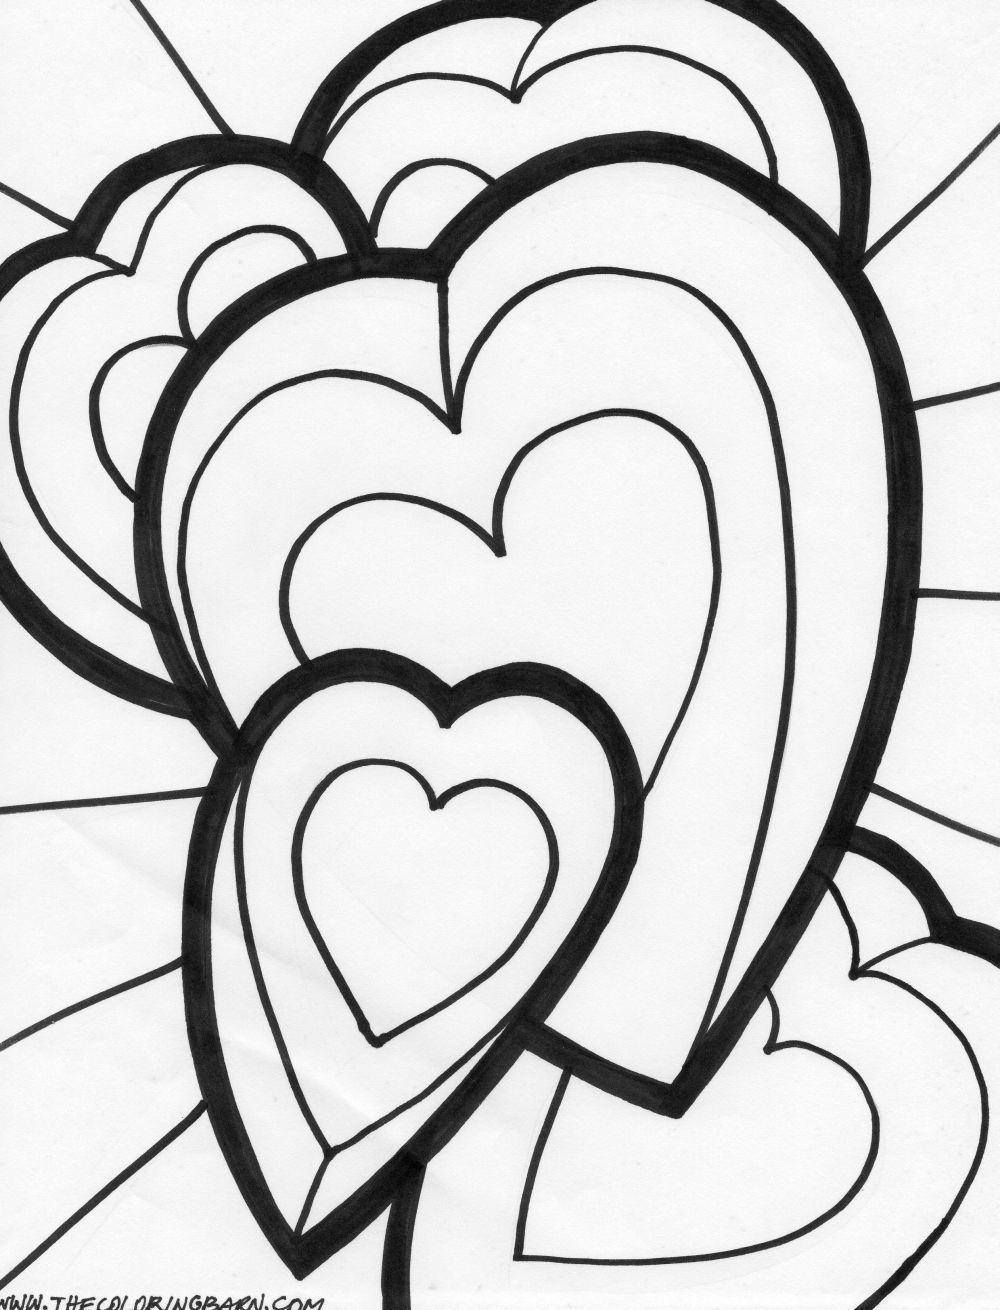 Free printable coloring pages valentine heart - Hearts And Roses Coloring Pages Coloring Page Bow Heart Coloring Page Flying Heart Coloring Page Free Printable